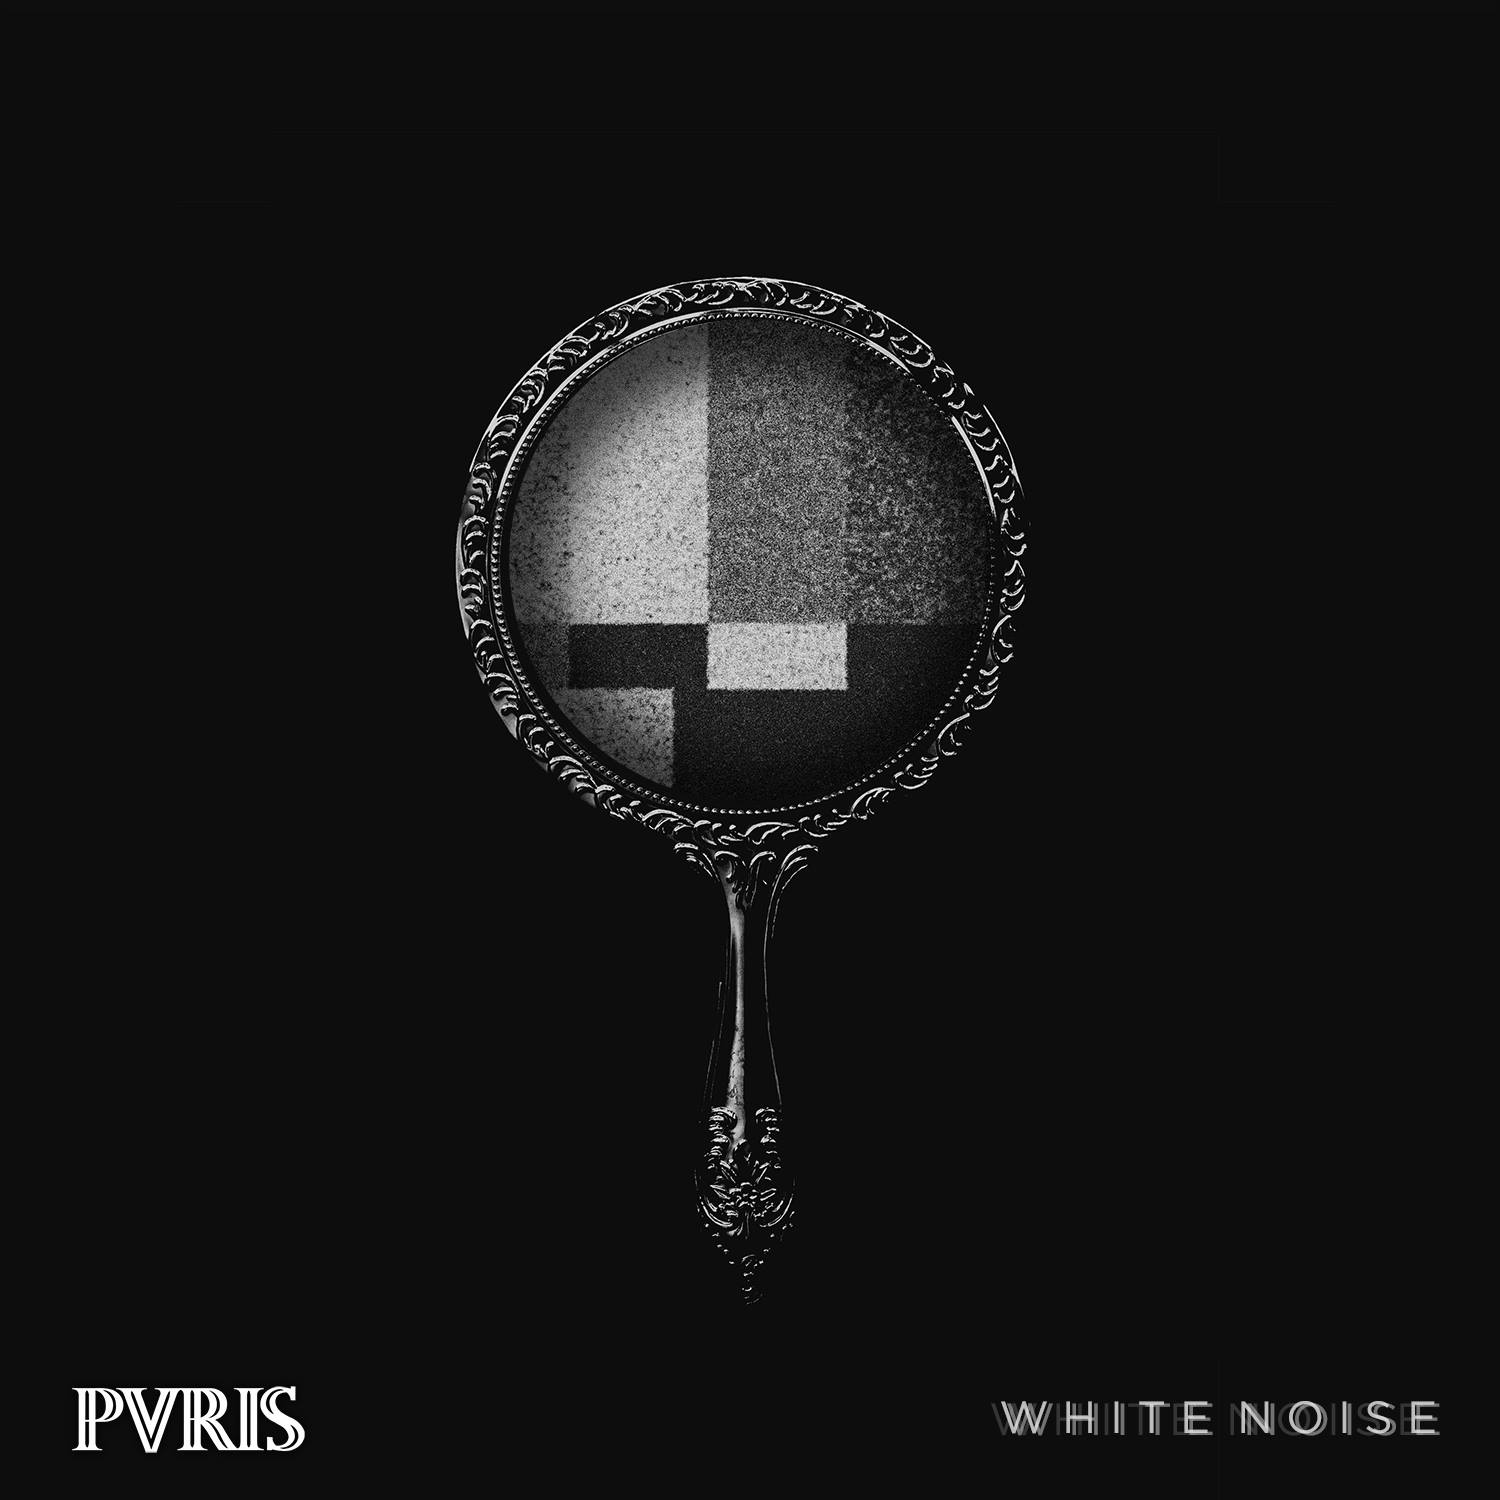 pvris-white-noise-2014.jpg